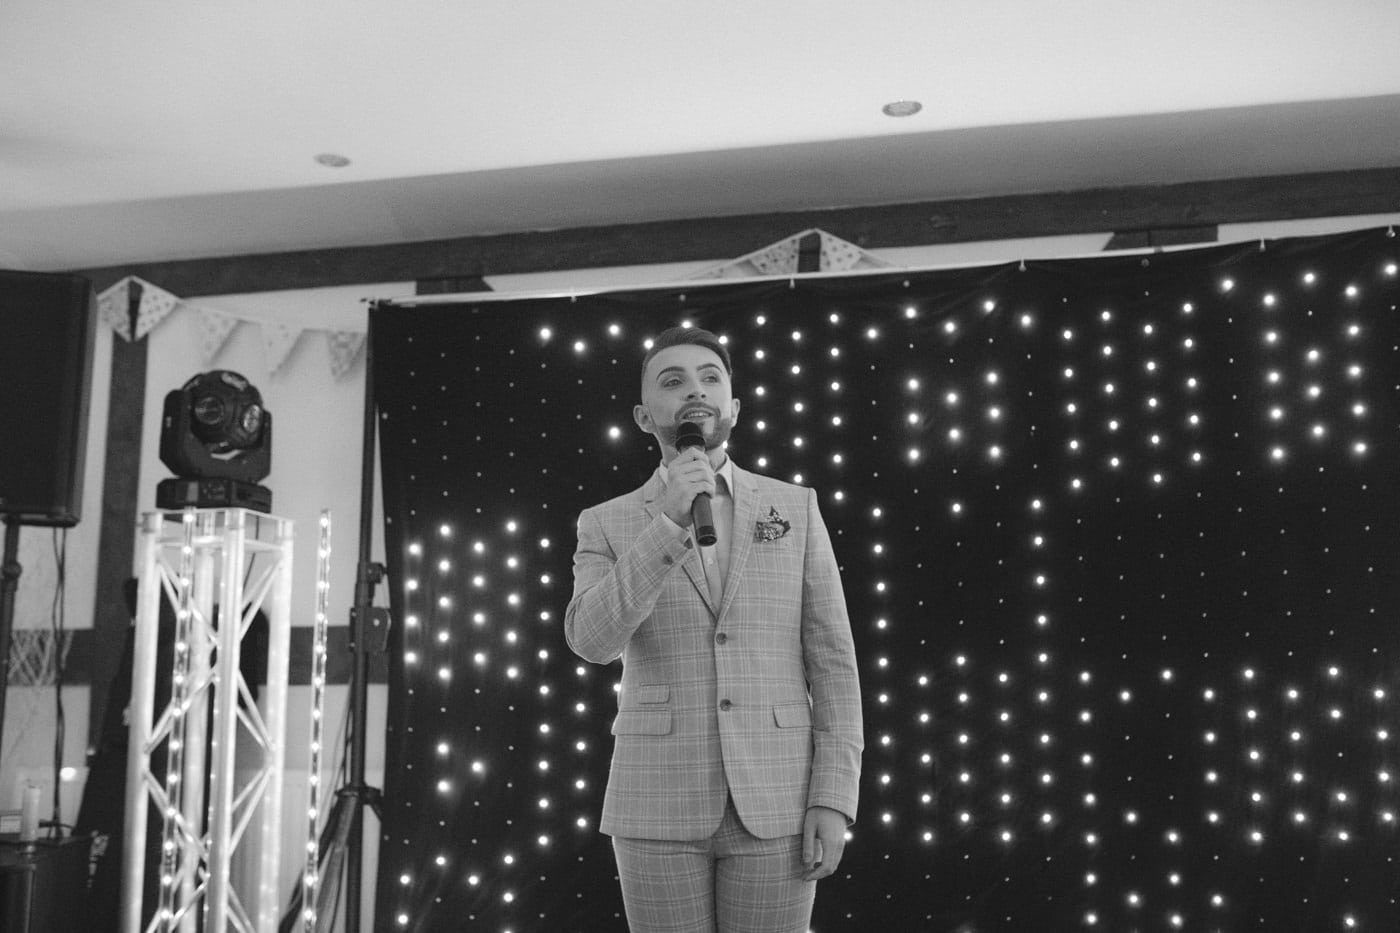 Reception Stage Guest Singing In Front of Other Guests Portrait Photography